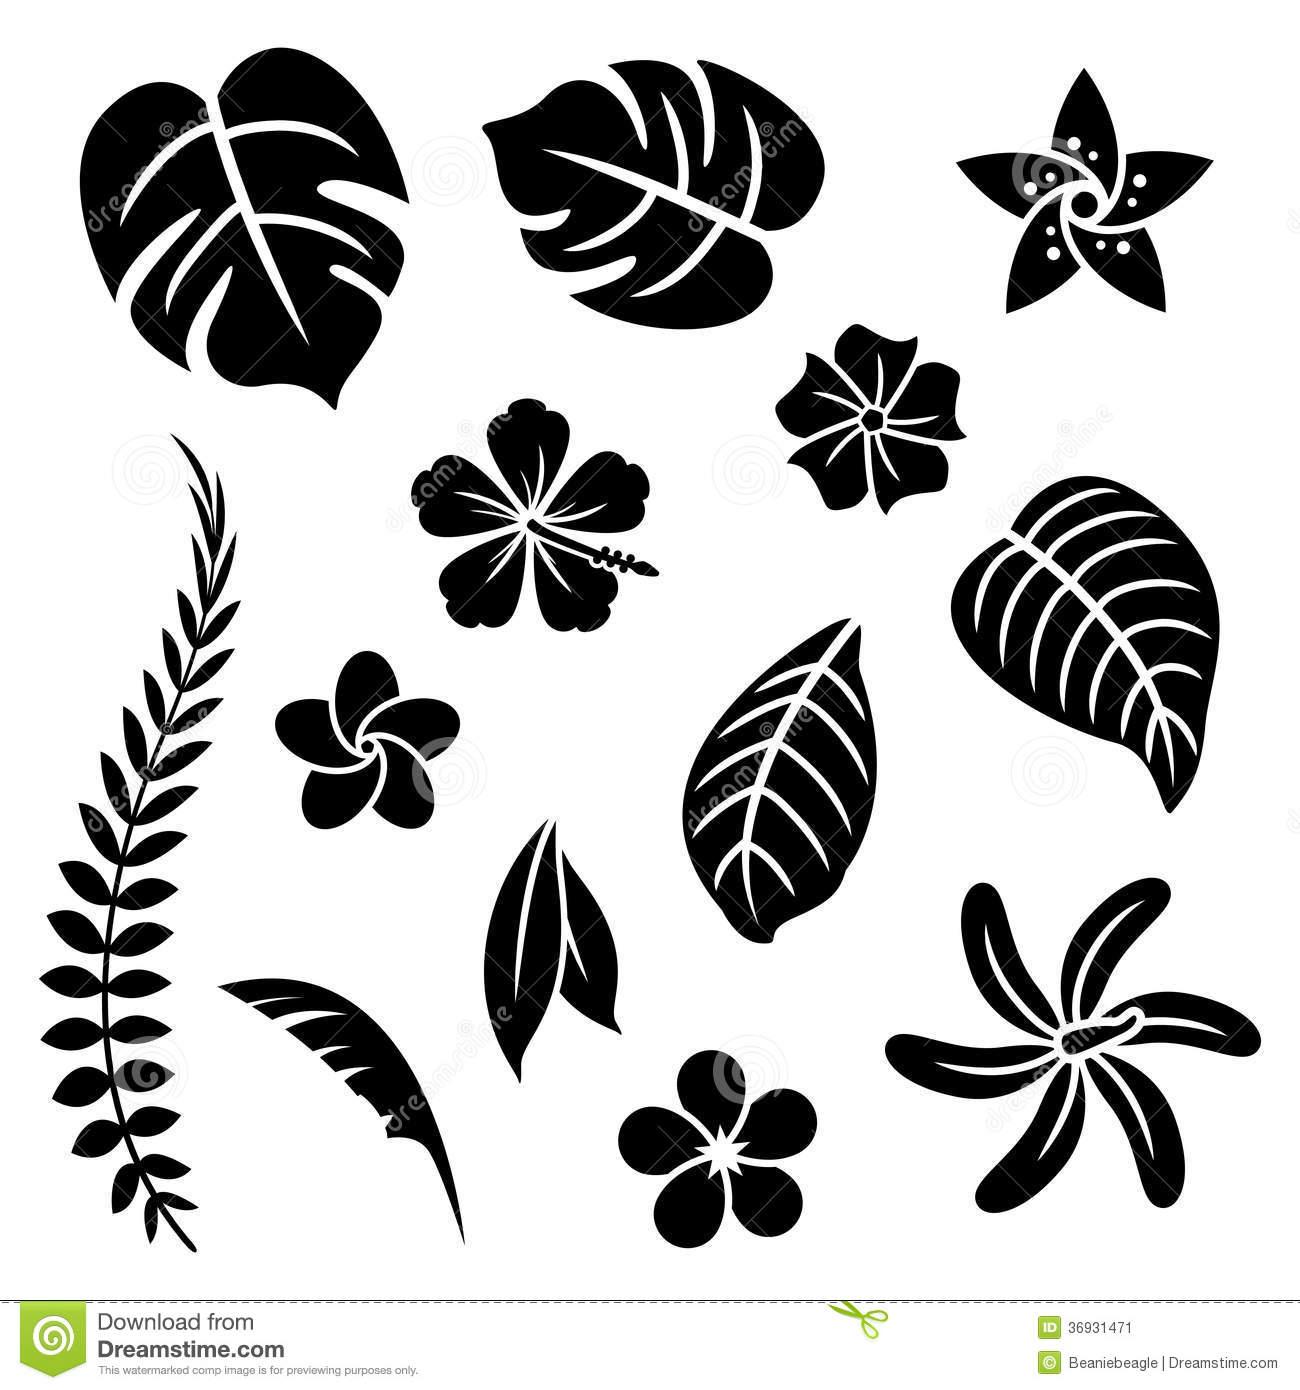 Tropical Stock Illustrations 849 814 Tropical Stock Illustrations Vectors Clipart Dreamstime Tropical leaves vector clipart and illustrations (148,617). dreamstime com